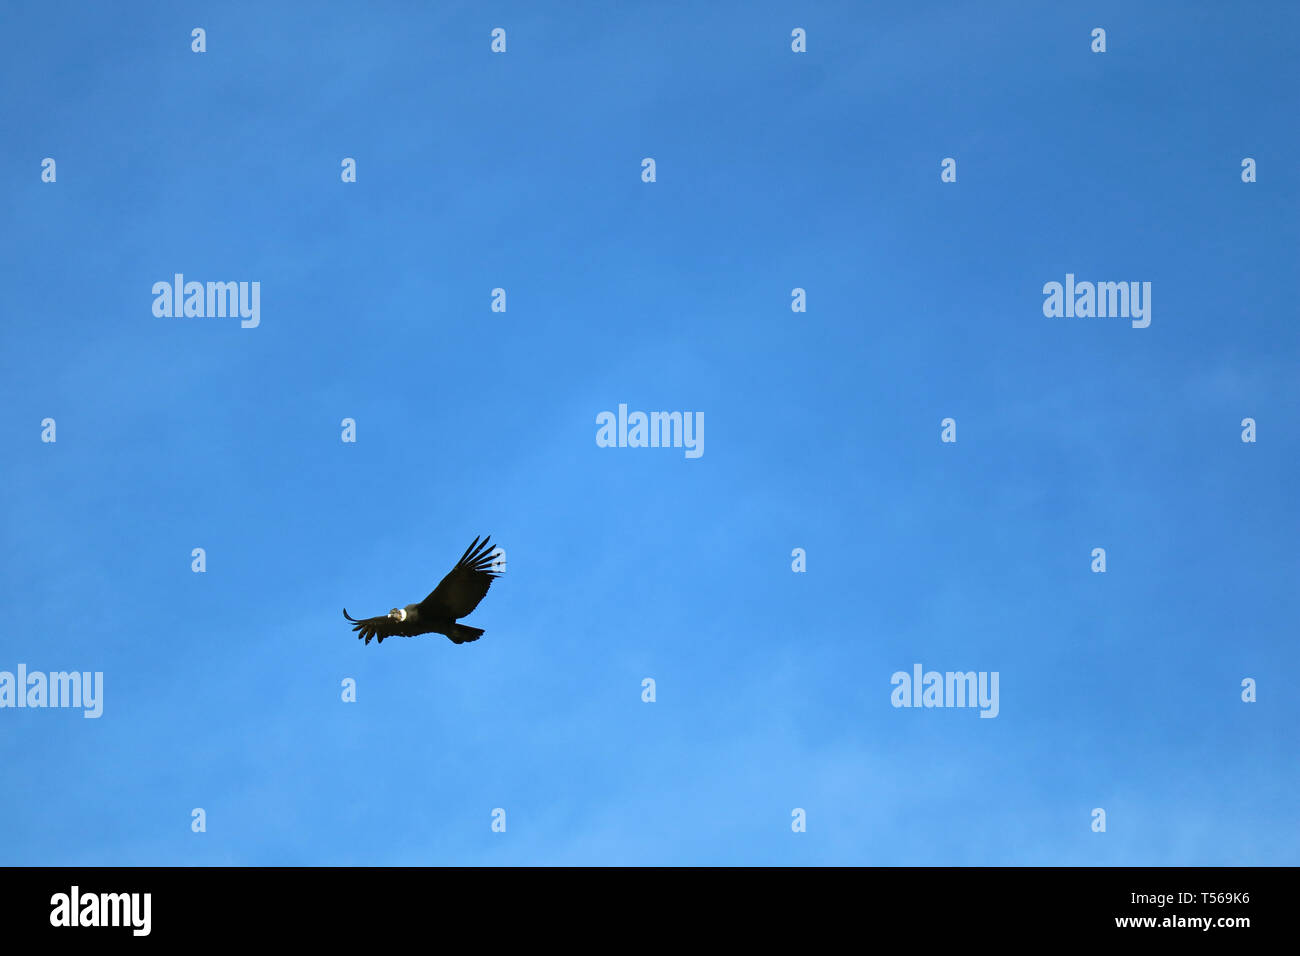 One Andean Condor Bird Flying in the Blue Sky over Colca Canyon, Arequipa region, Peru, South America - Stock Image